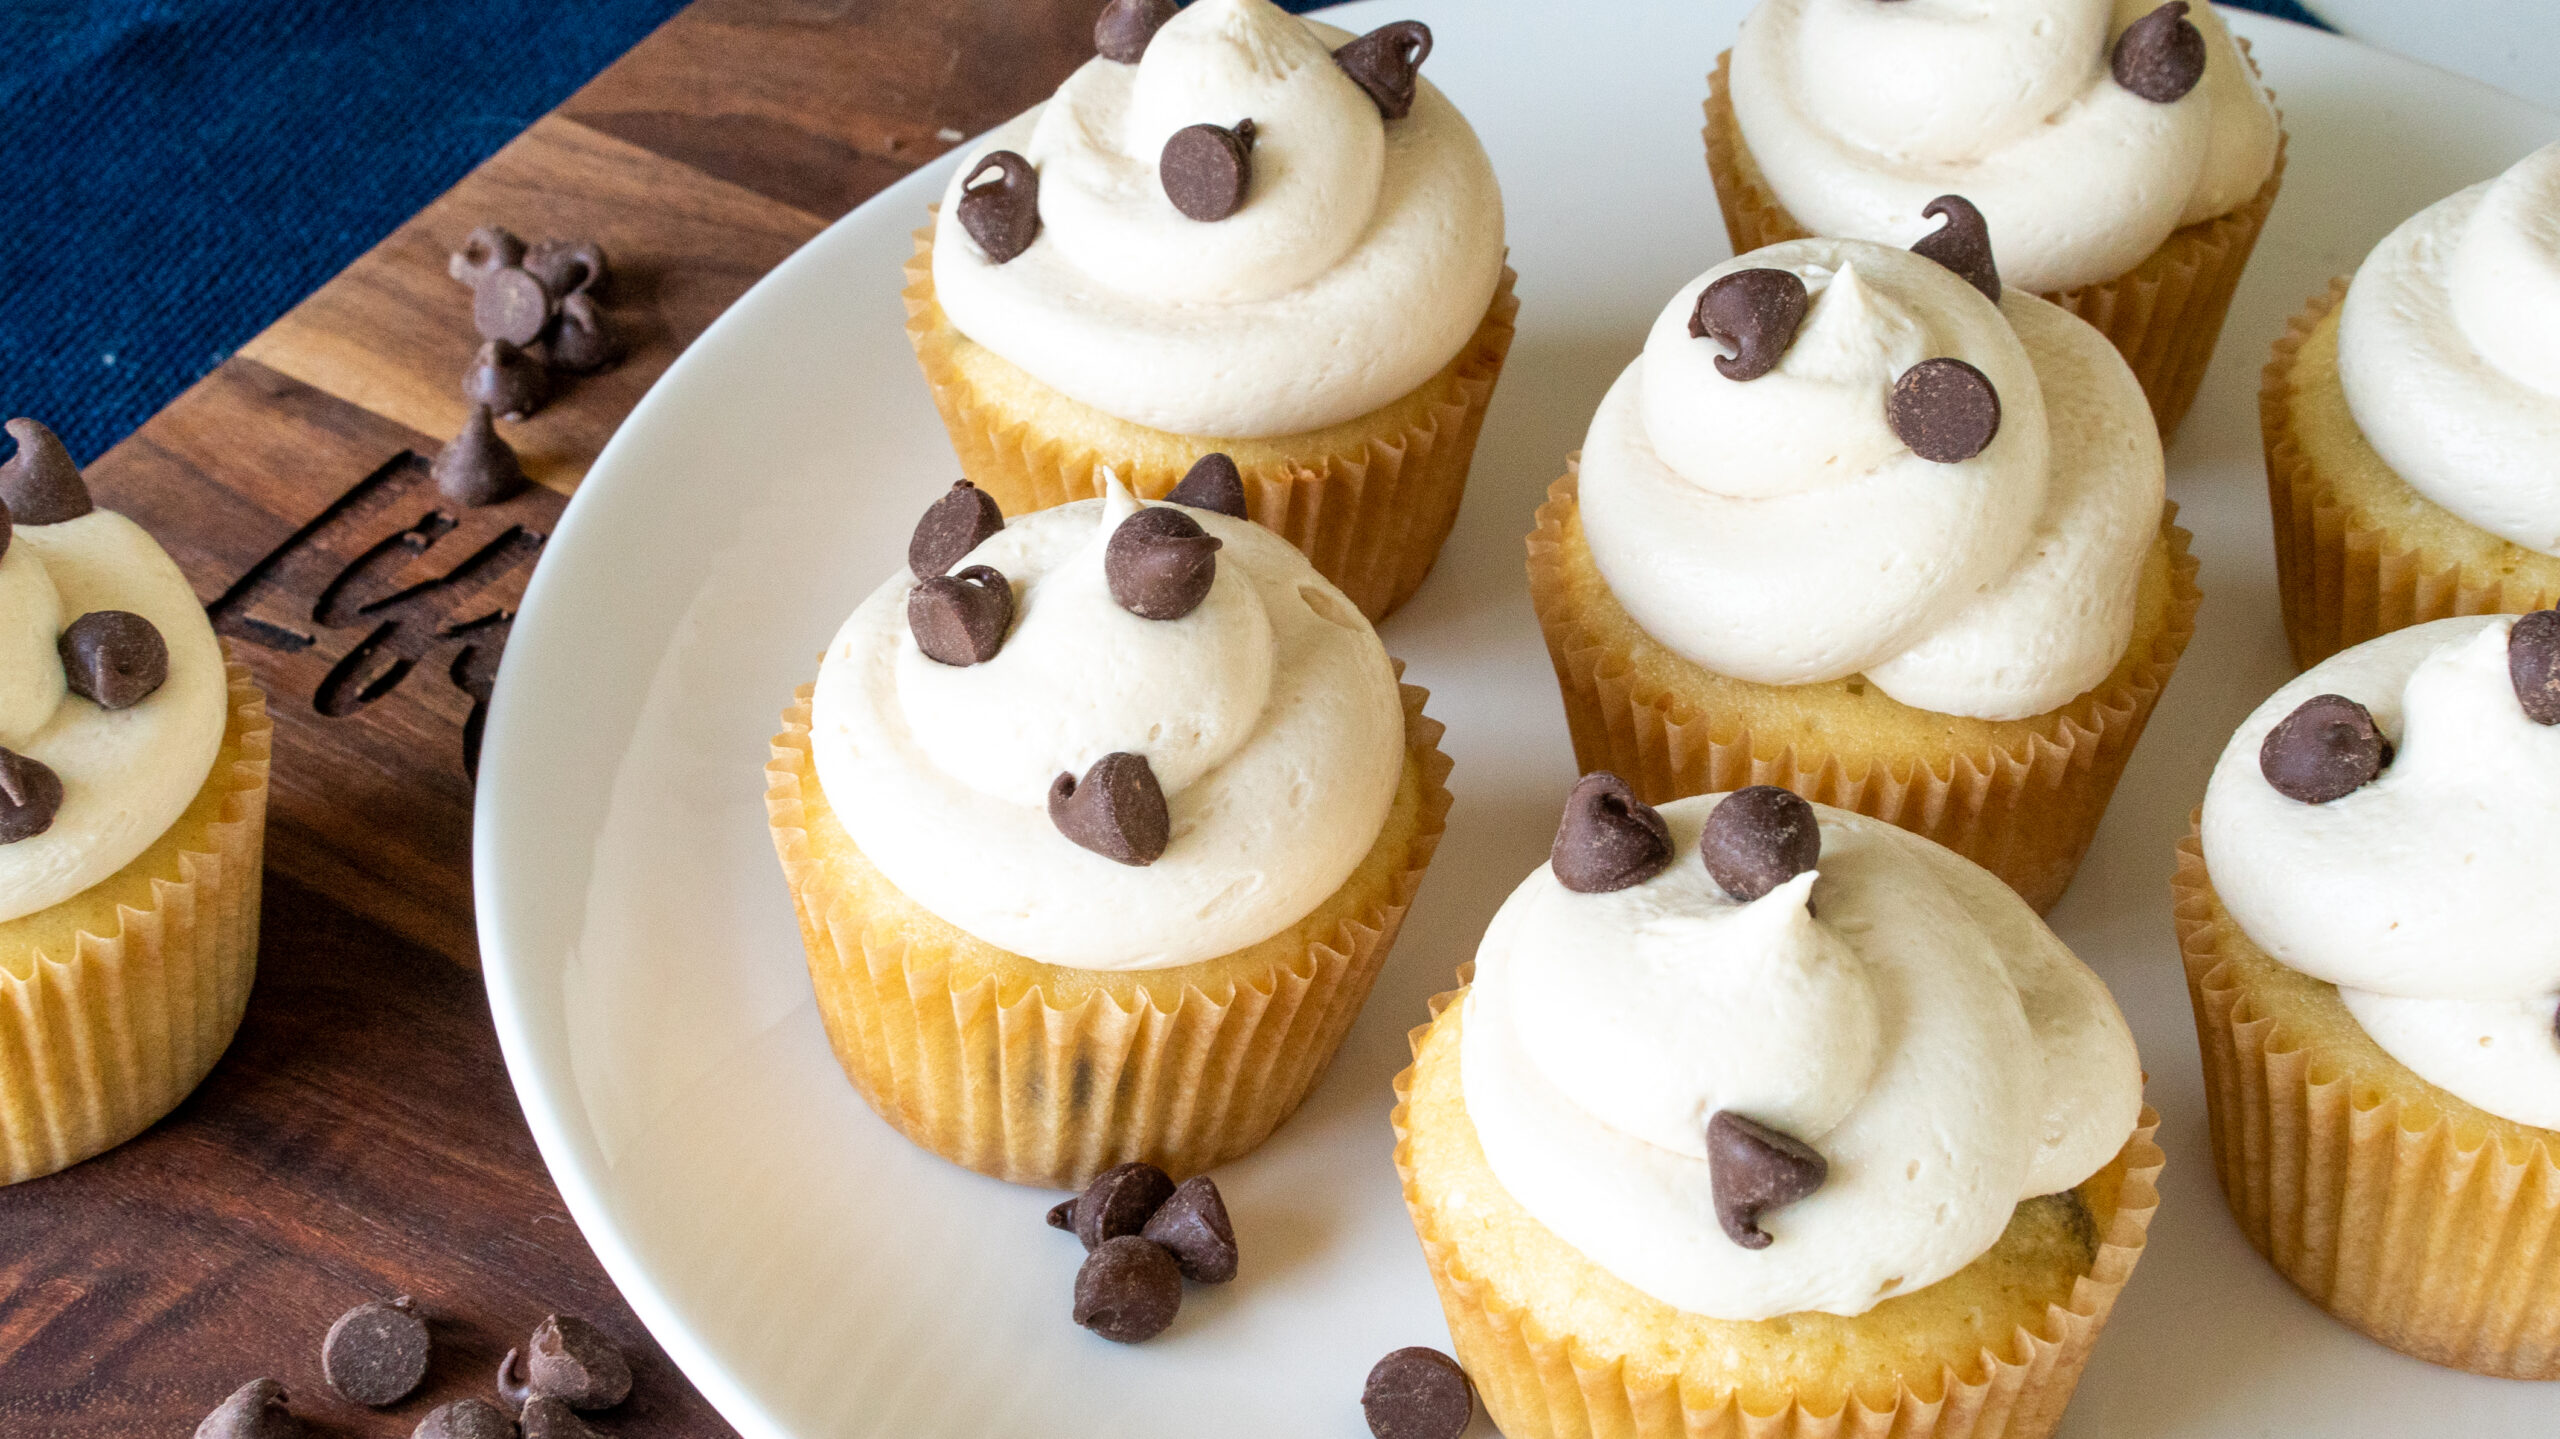 Chocolate Chip Cupcakes with Coffee Frosting